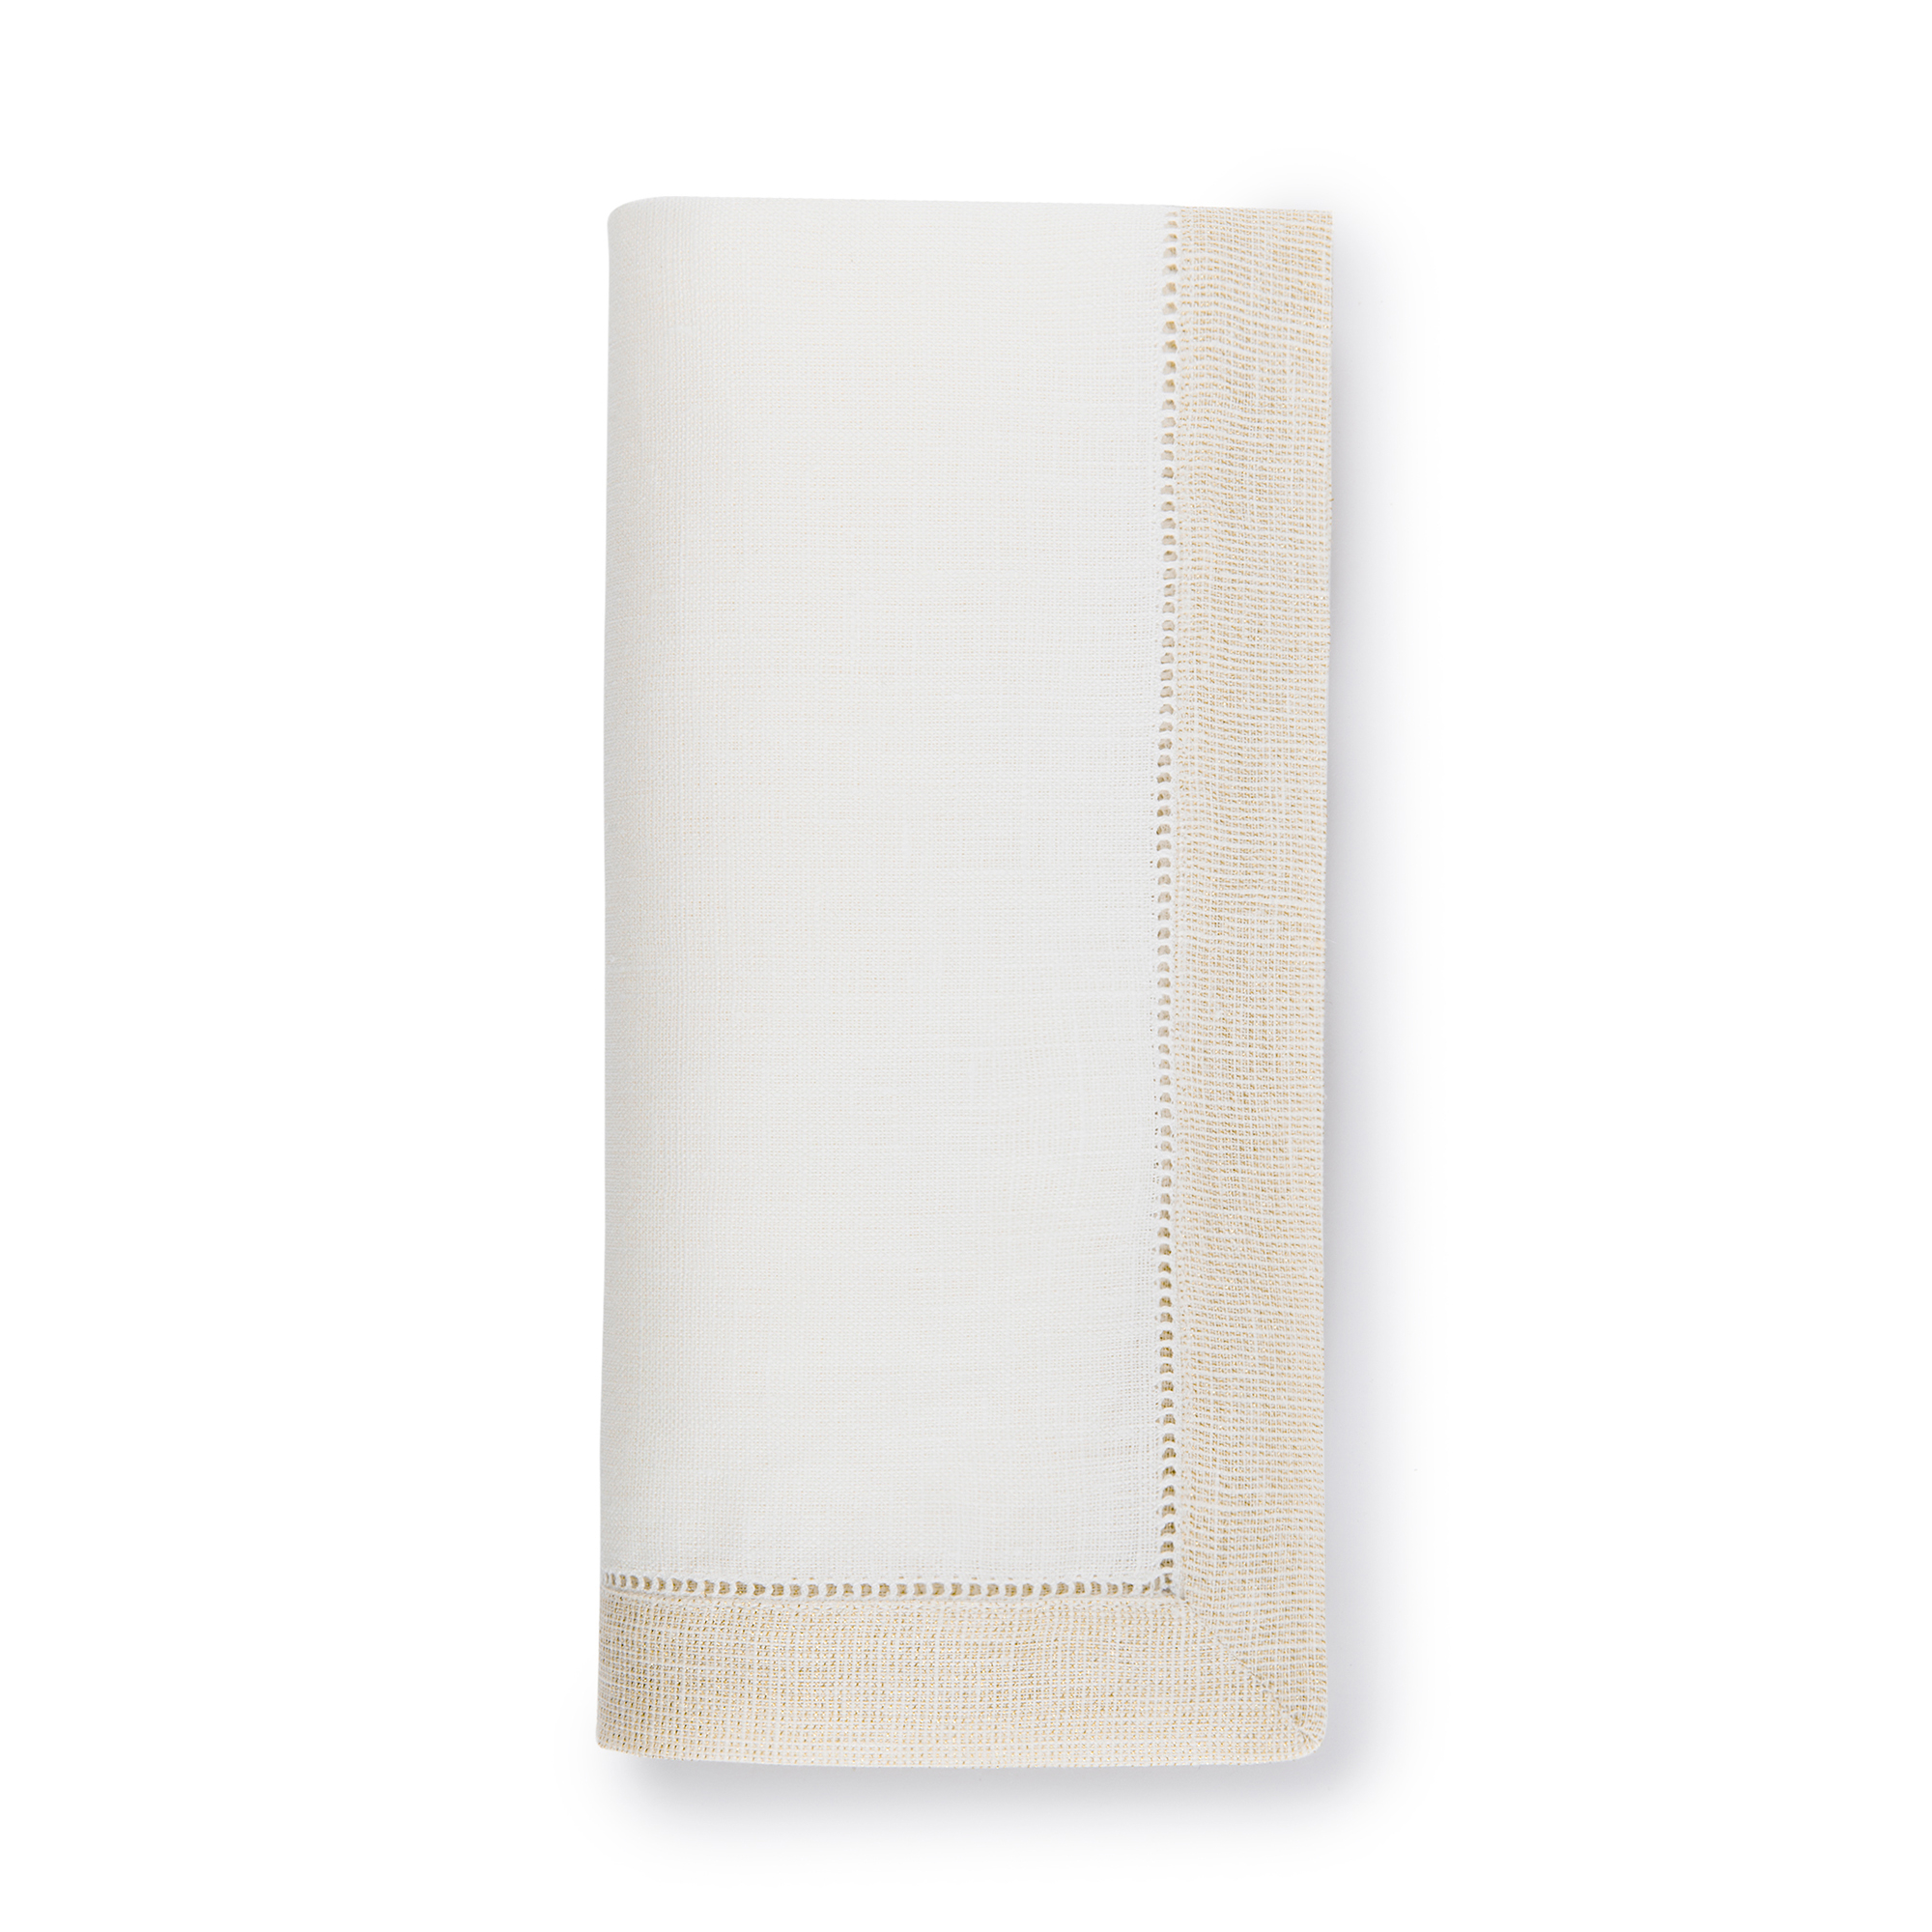 Sferra Filetto Linen Napkins, Set of 4